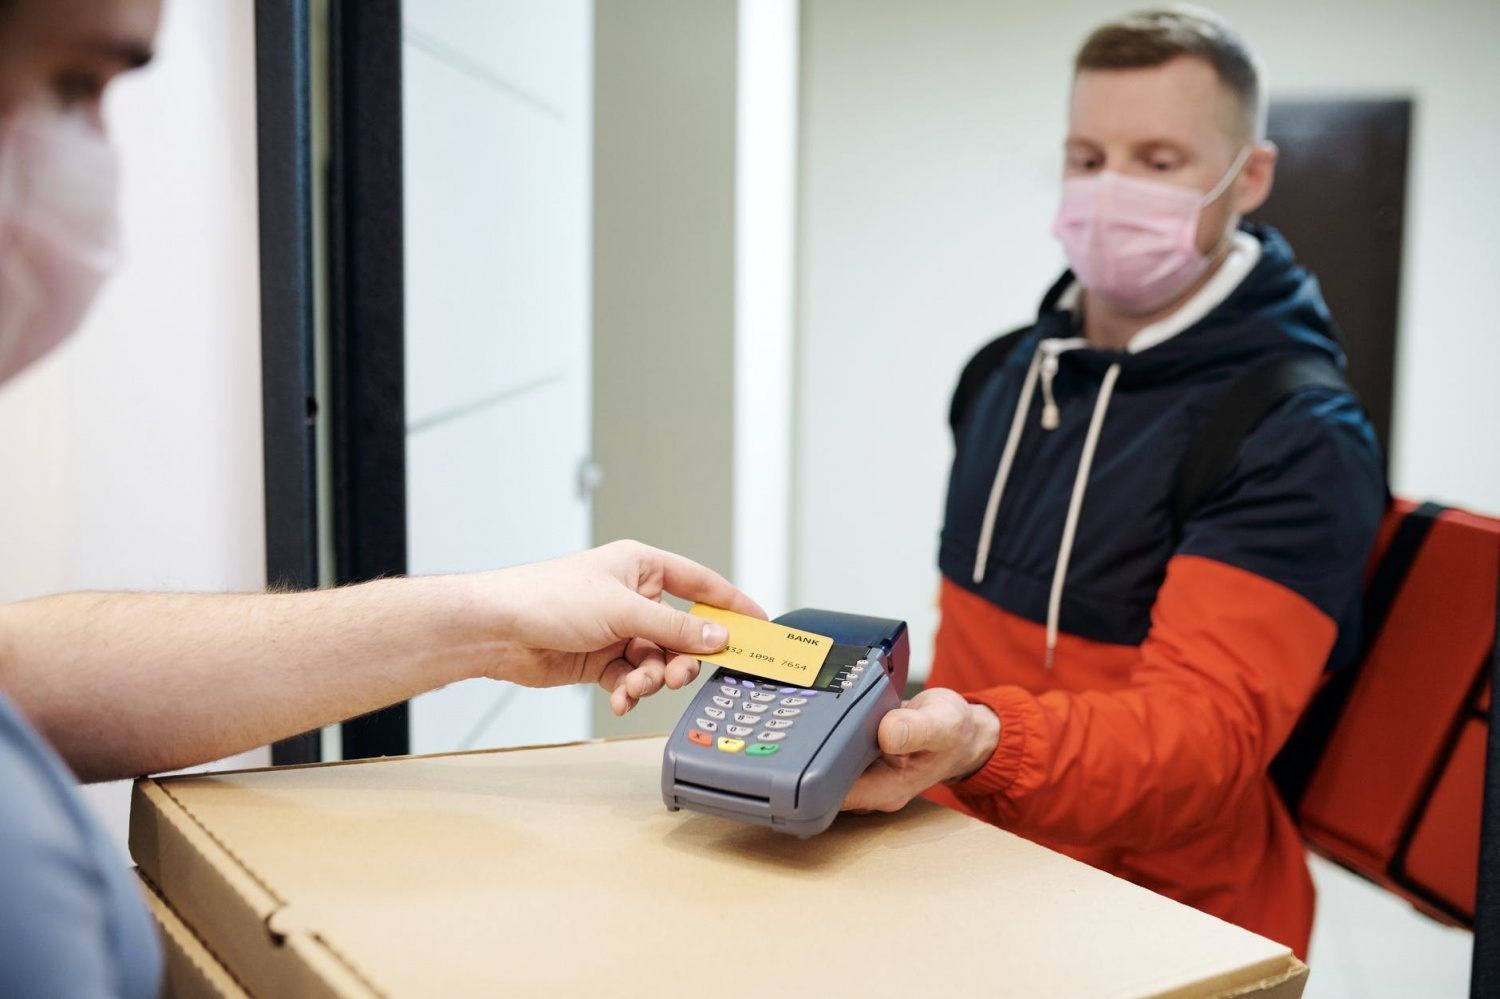 7 Digital Payment Trends to Watch for in 2021